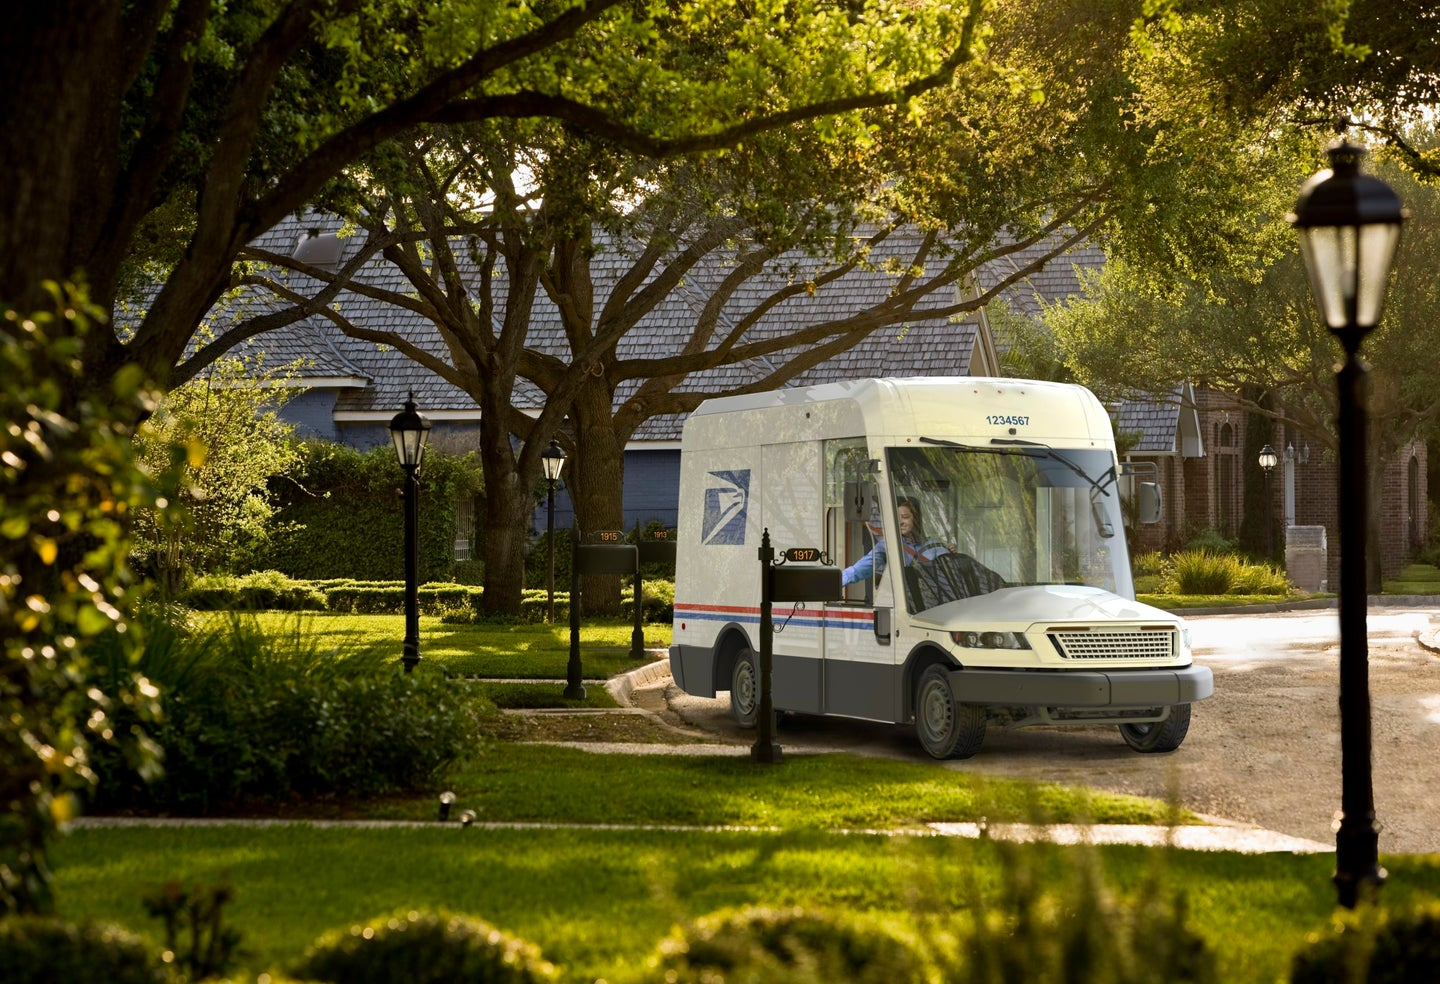 New USPS mail delivery truck in a simulated suburb